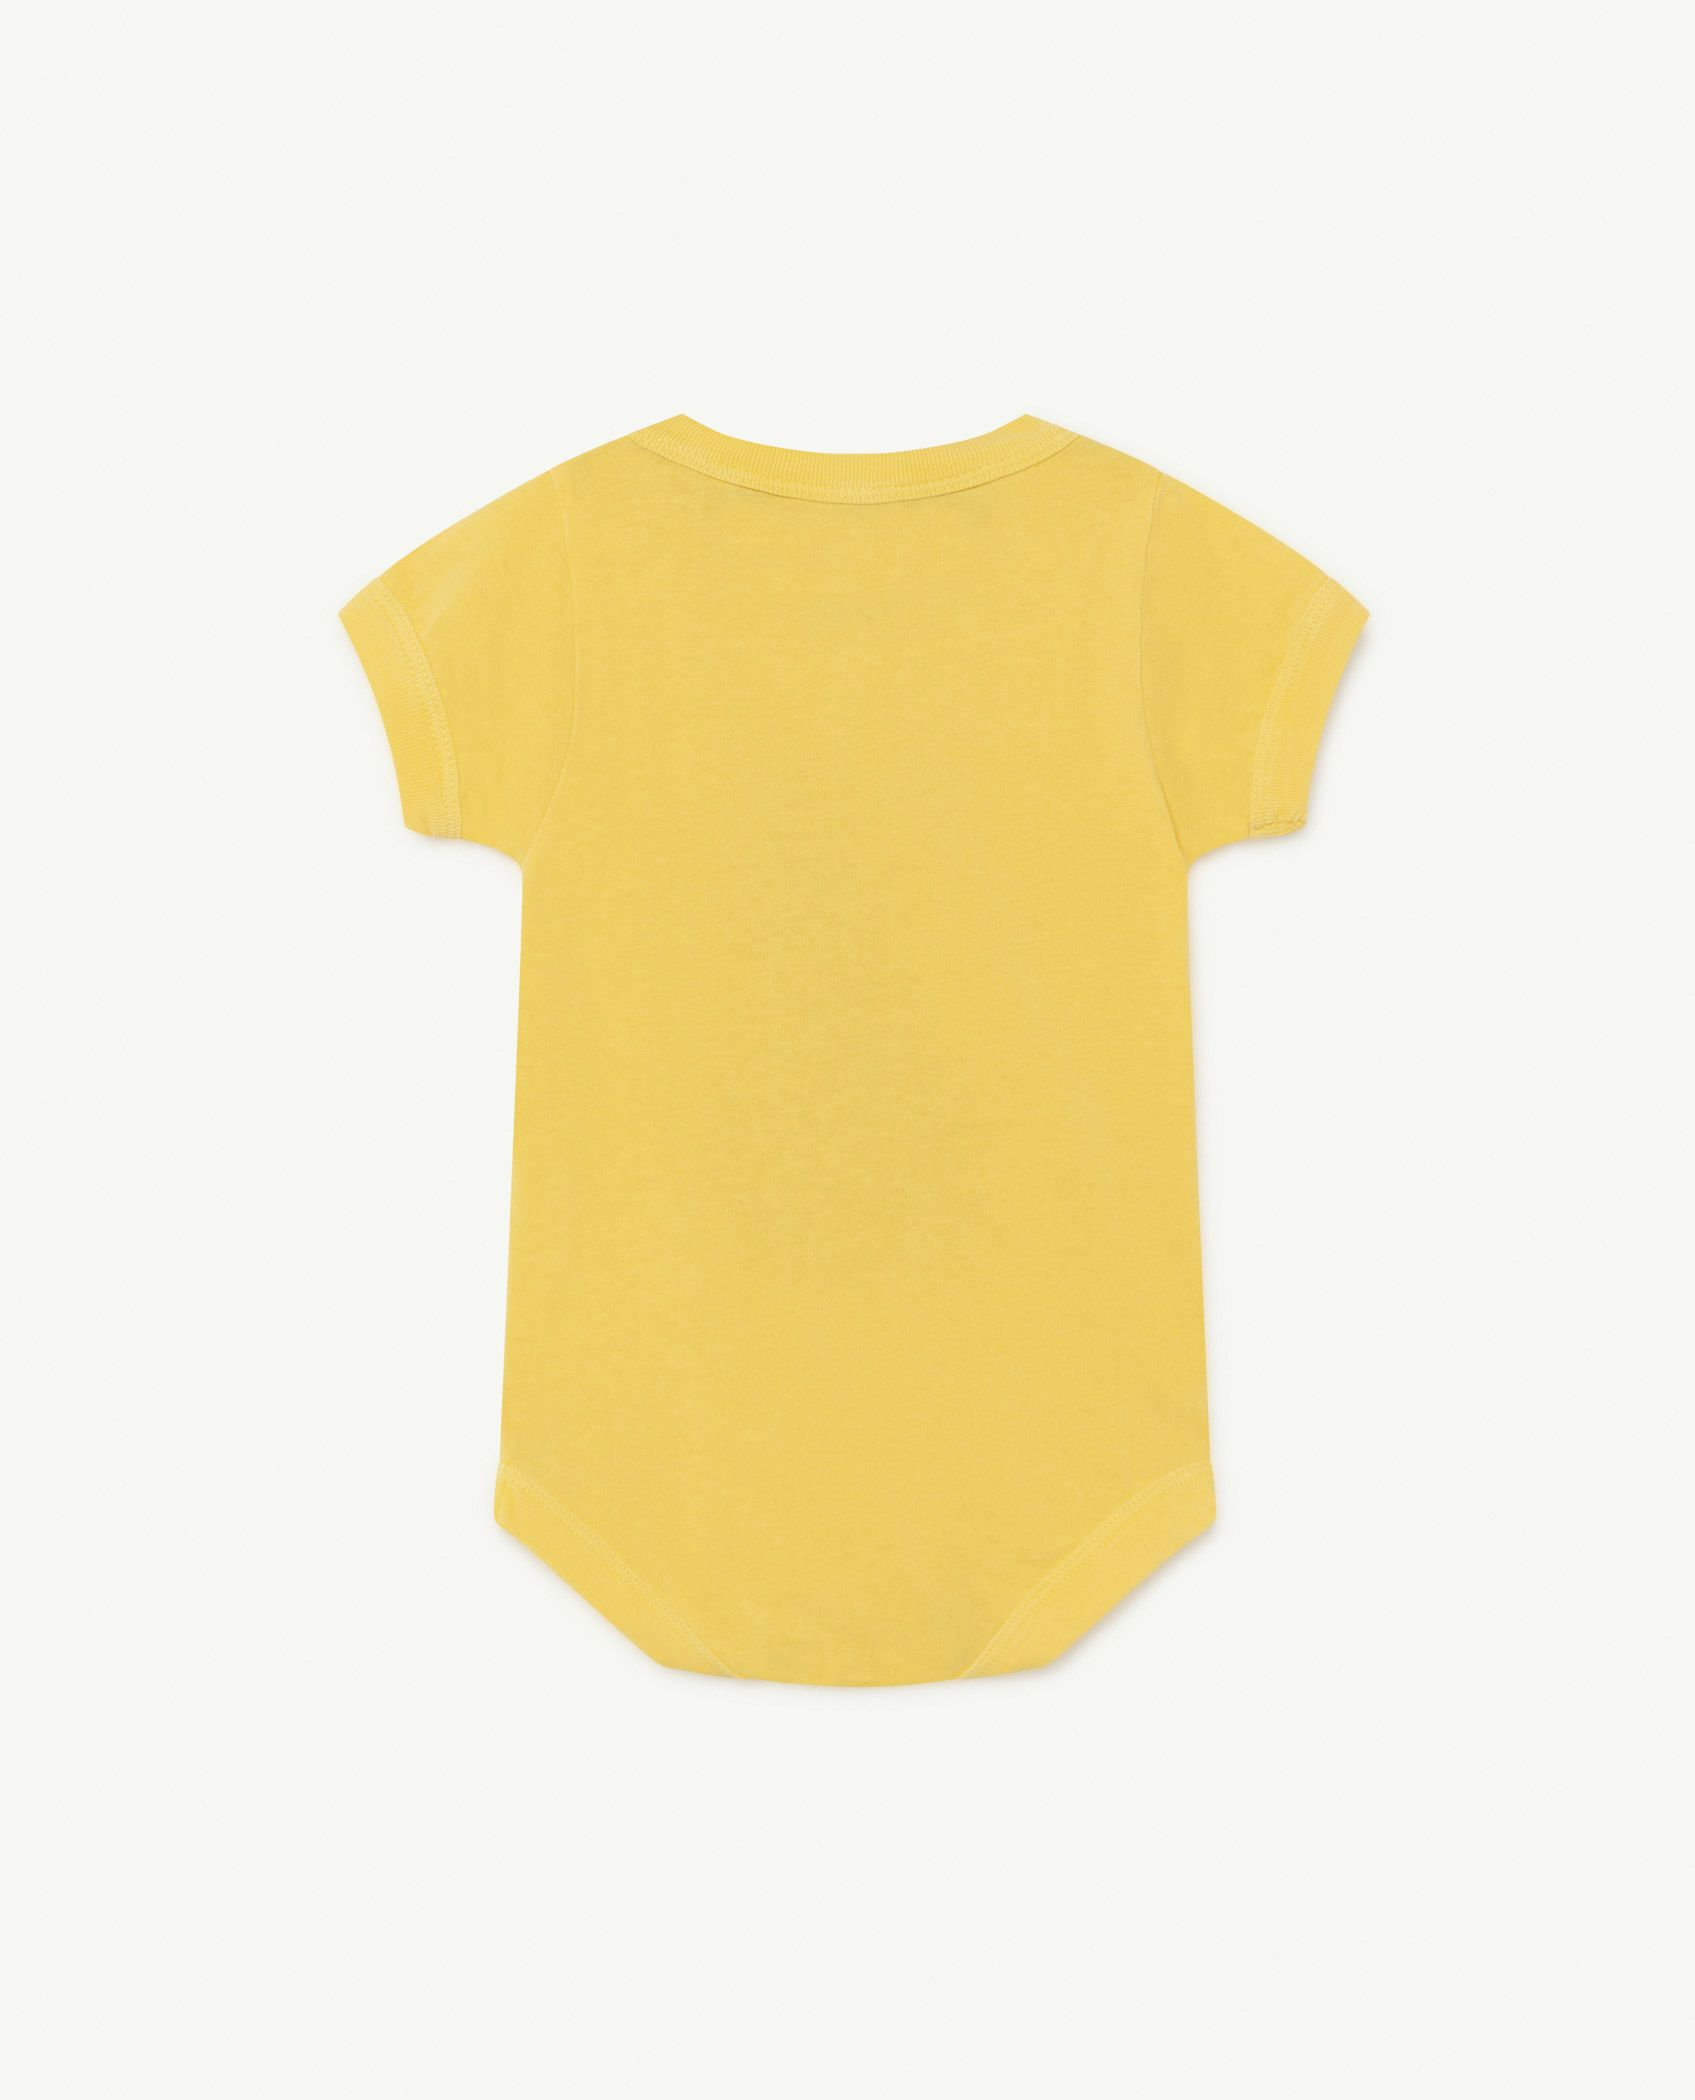 Soft Yellow Peanut Chimpanzee Baby Body img-2